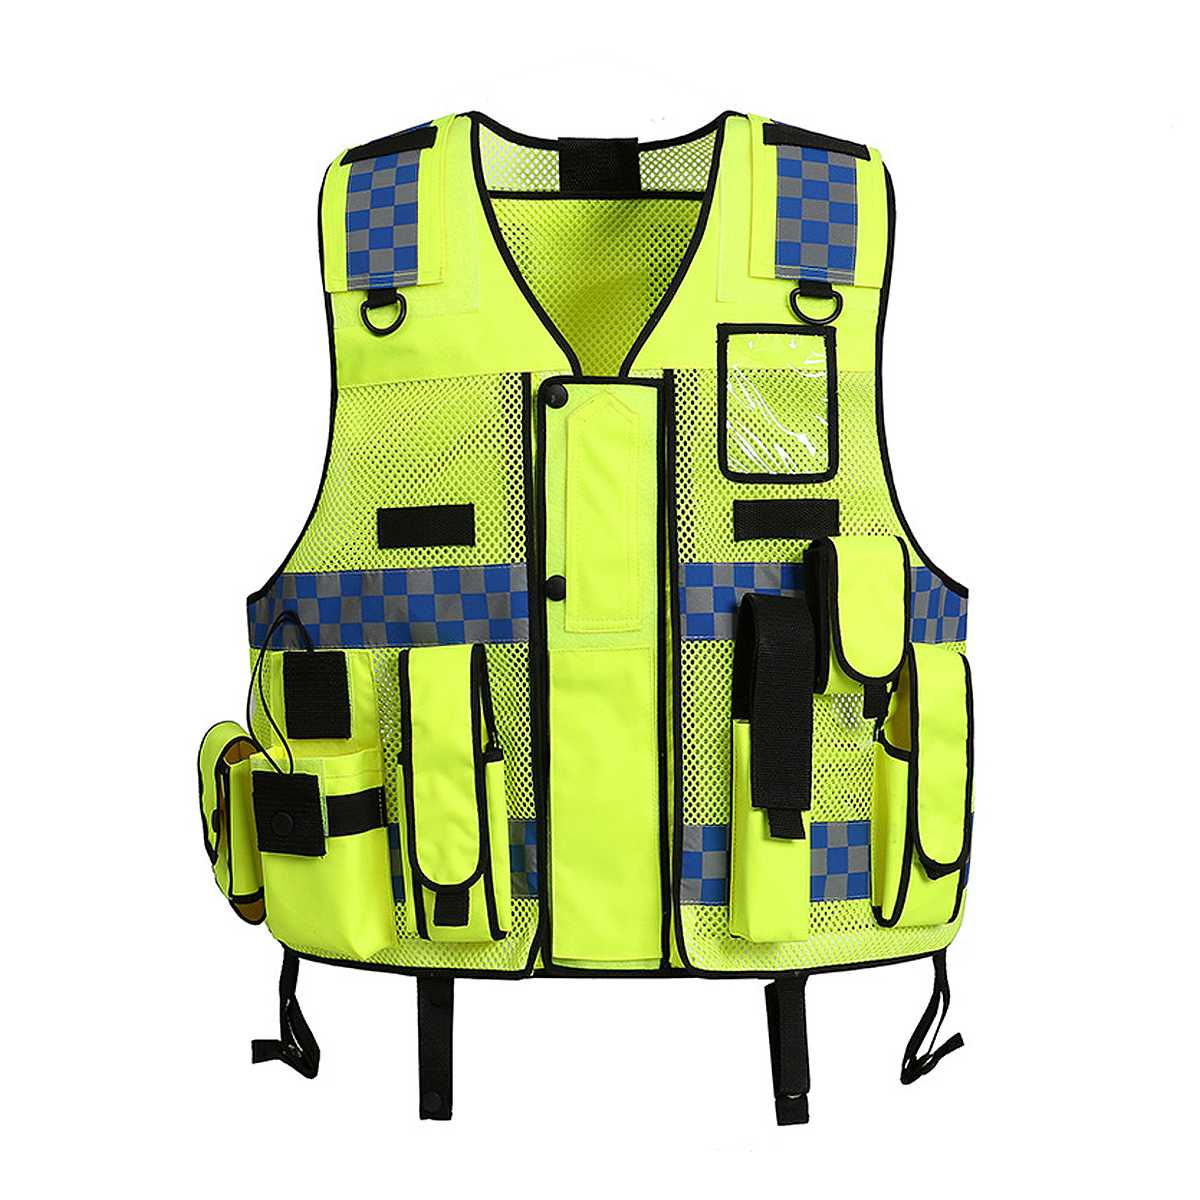 NEW Yellow Tactic Security Patrol Vest Hi Viz Industry Door Staff Workwear Safety Clothing High Visibility Night Reflective Safe